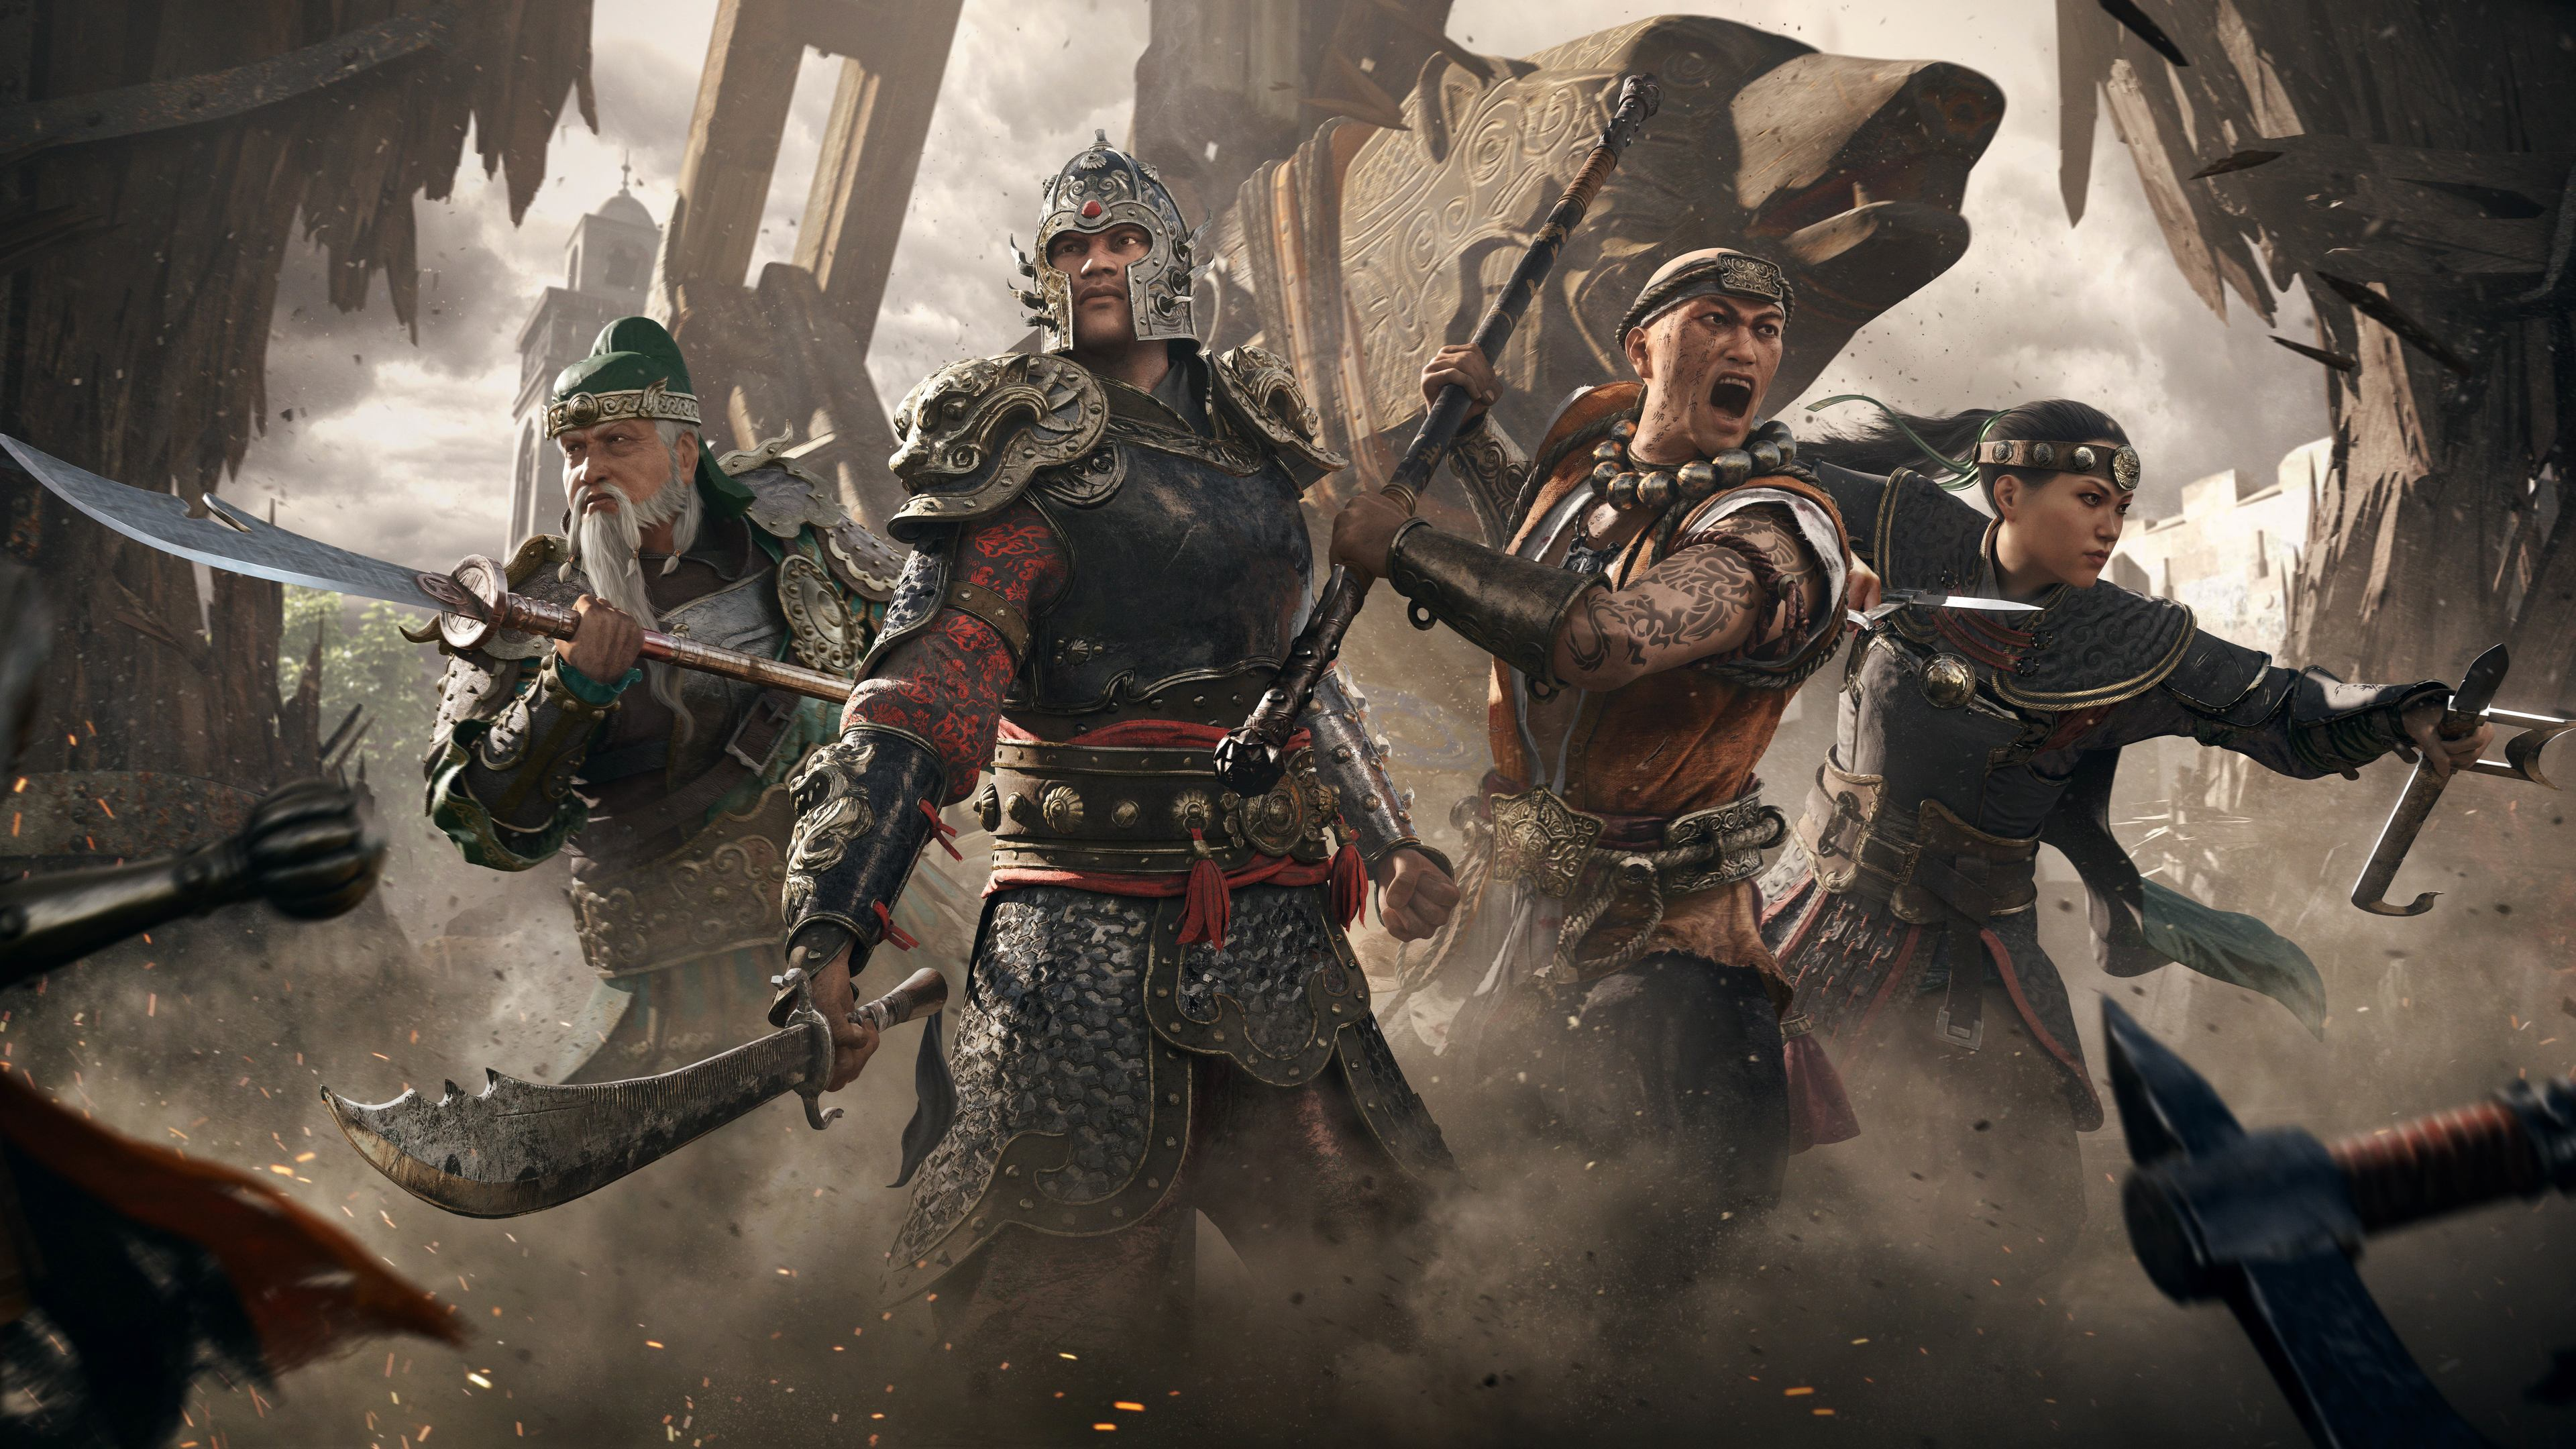 for honor 15k 1537690903 - For Honor 15k - xbox games wallpapers, ps games wallpapers, pc games wallpapers, hd-wallpapers, games wallpapers, for honor wallpapers, 8k wallpapers, 5k wallpapers, 4k-wallpapers, 2018 games wallpapers, 15k wallpapers, 12k wallpapers, 10k wallpapers